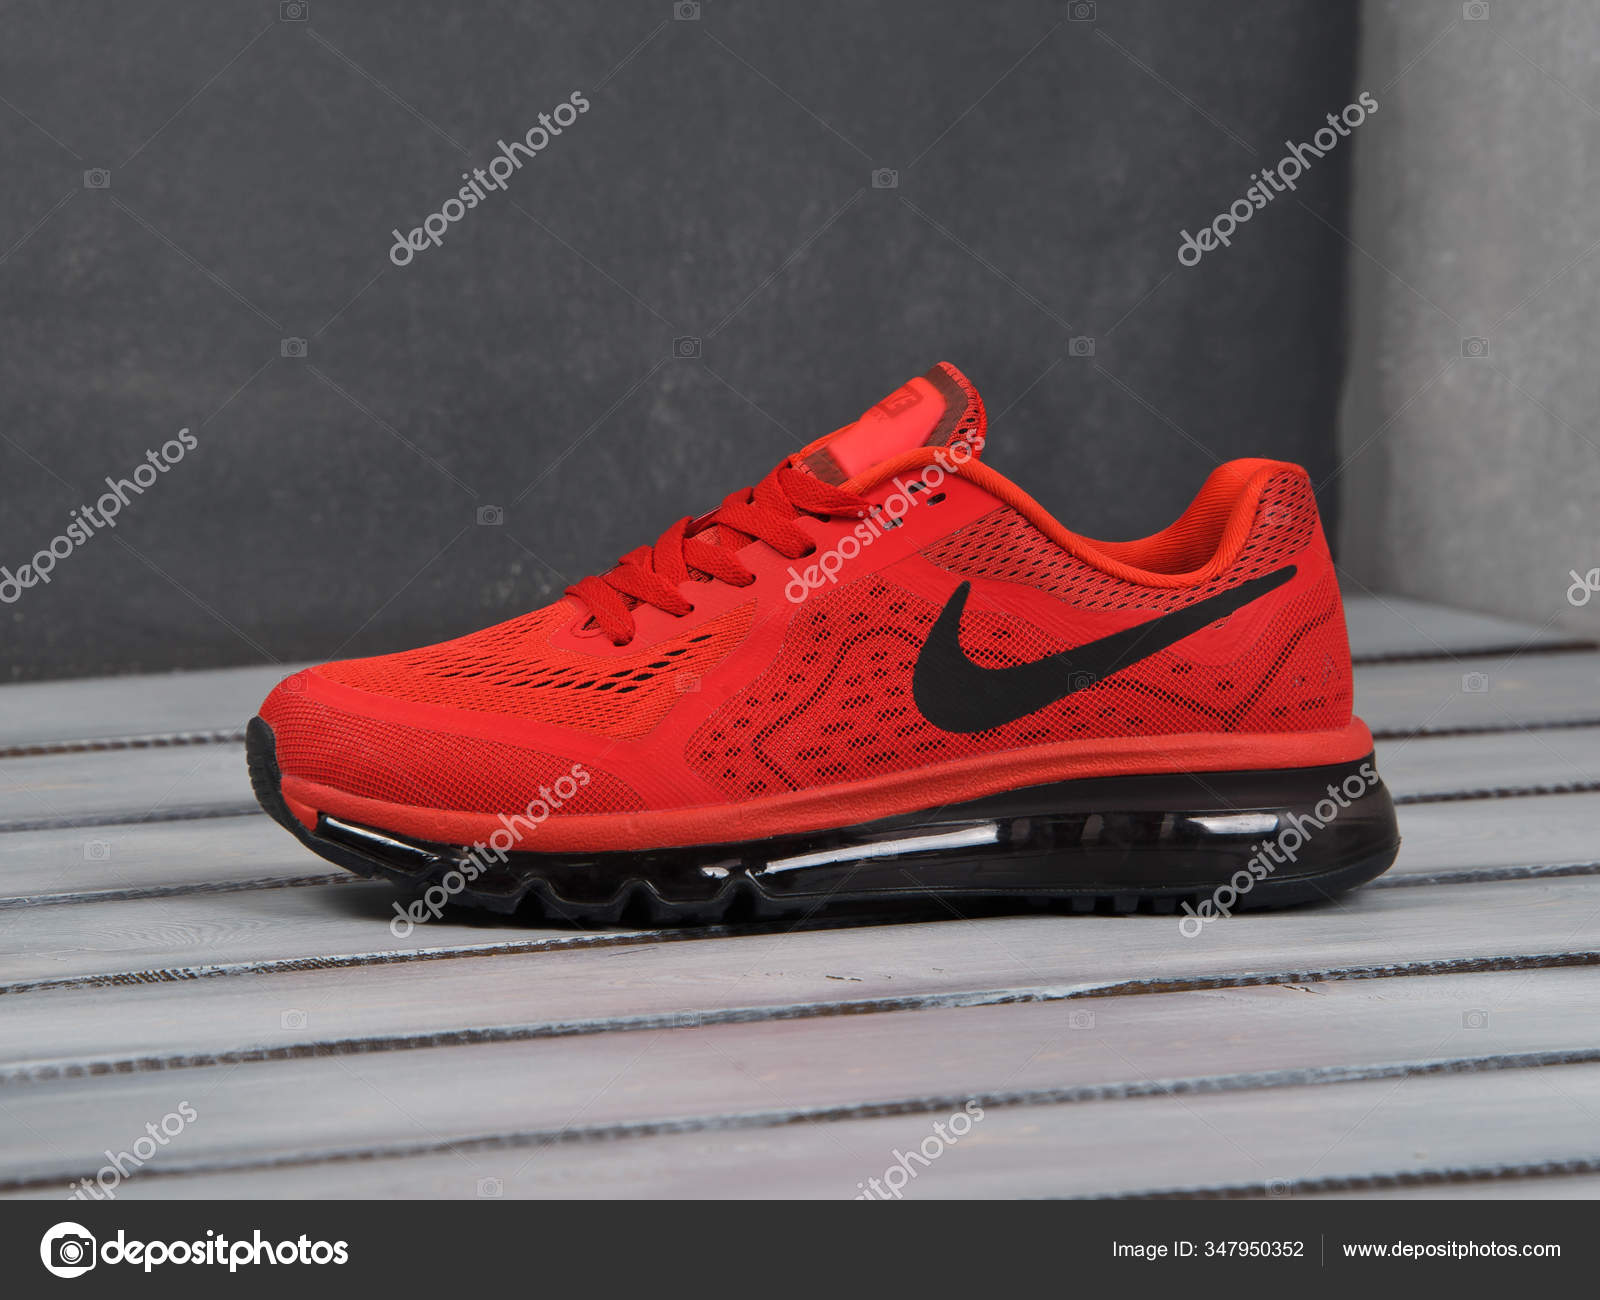 Red Nike Air Max 2014 running shoes, sneakers, trainers close up view, shot on grey abstract background. Sport and casual footwear concept. ...